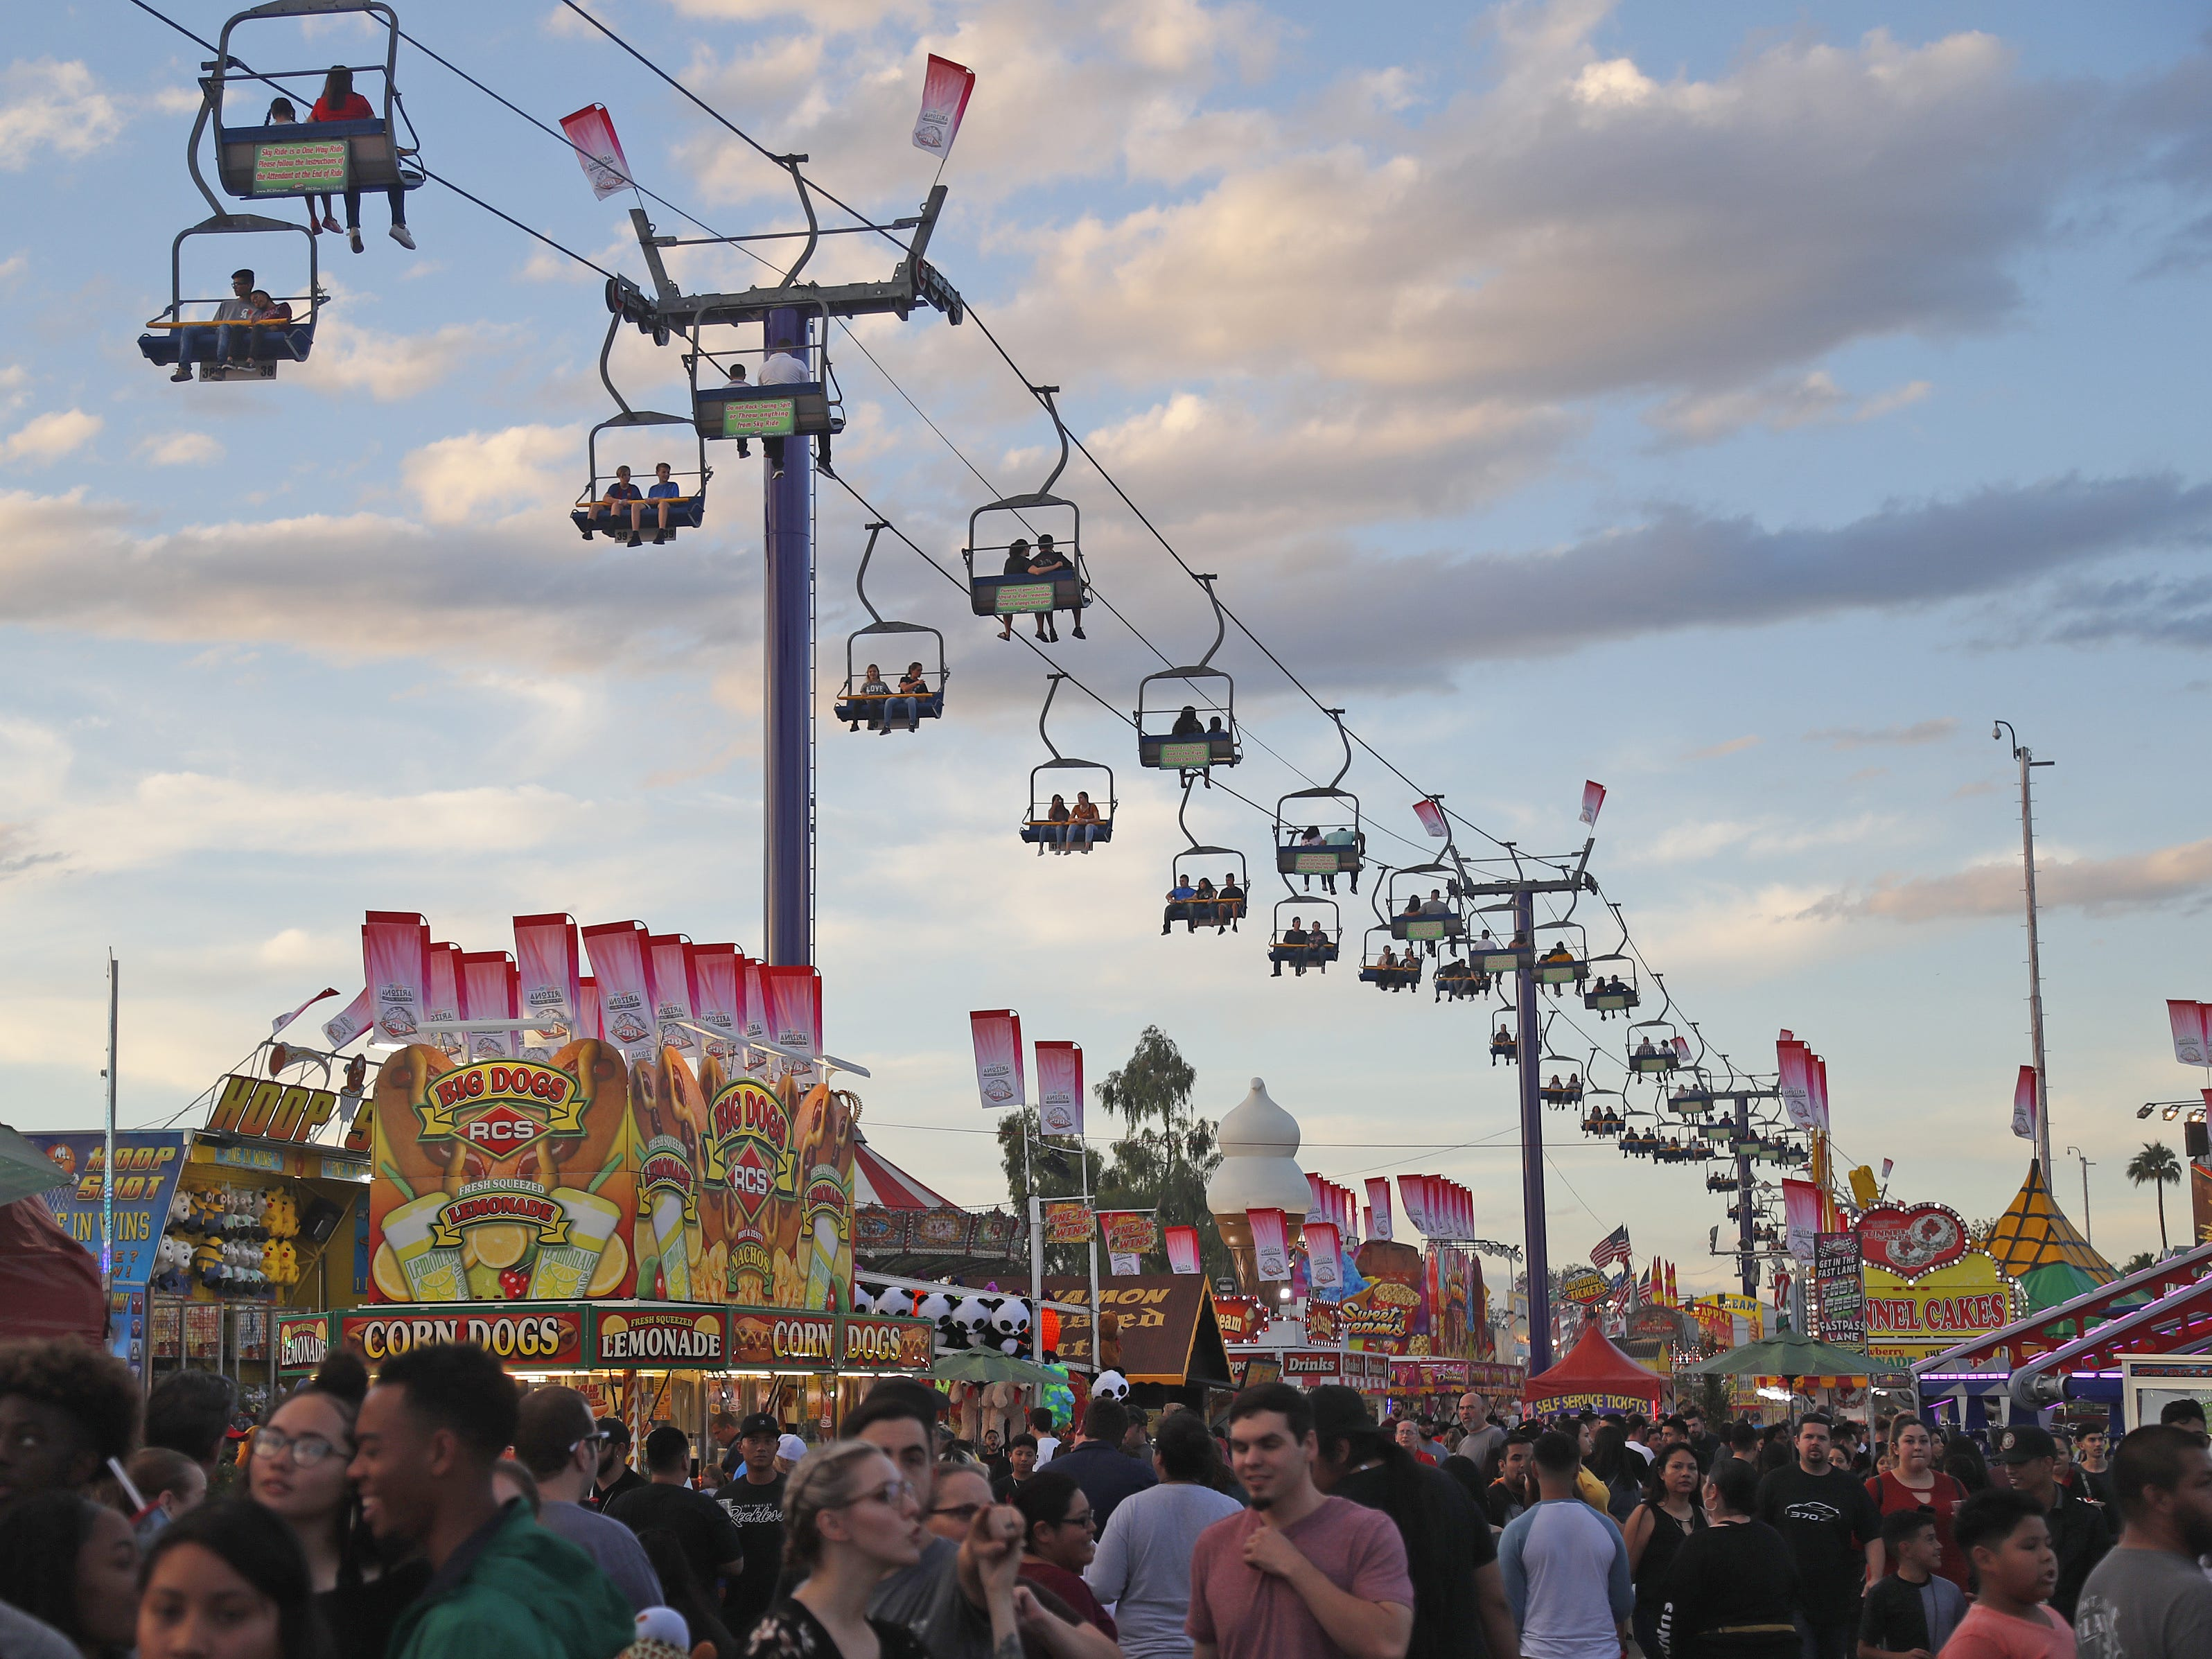 The sky ride makes its way over the top at the Arizona State Fair in Phoenix, Ariz. on October 21, 2018.